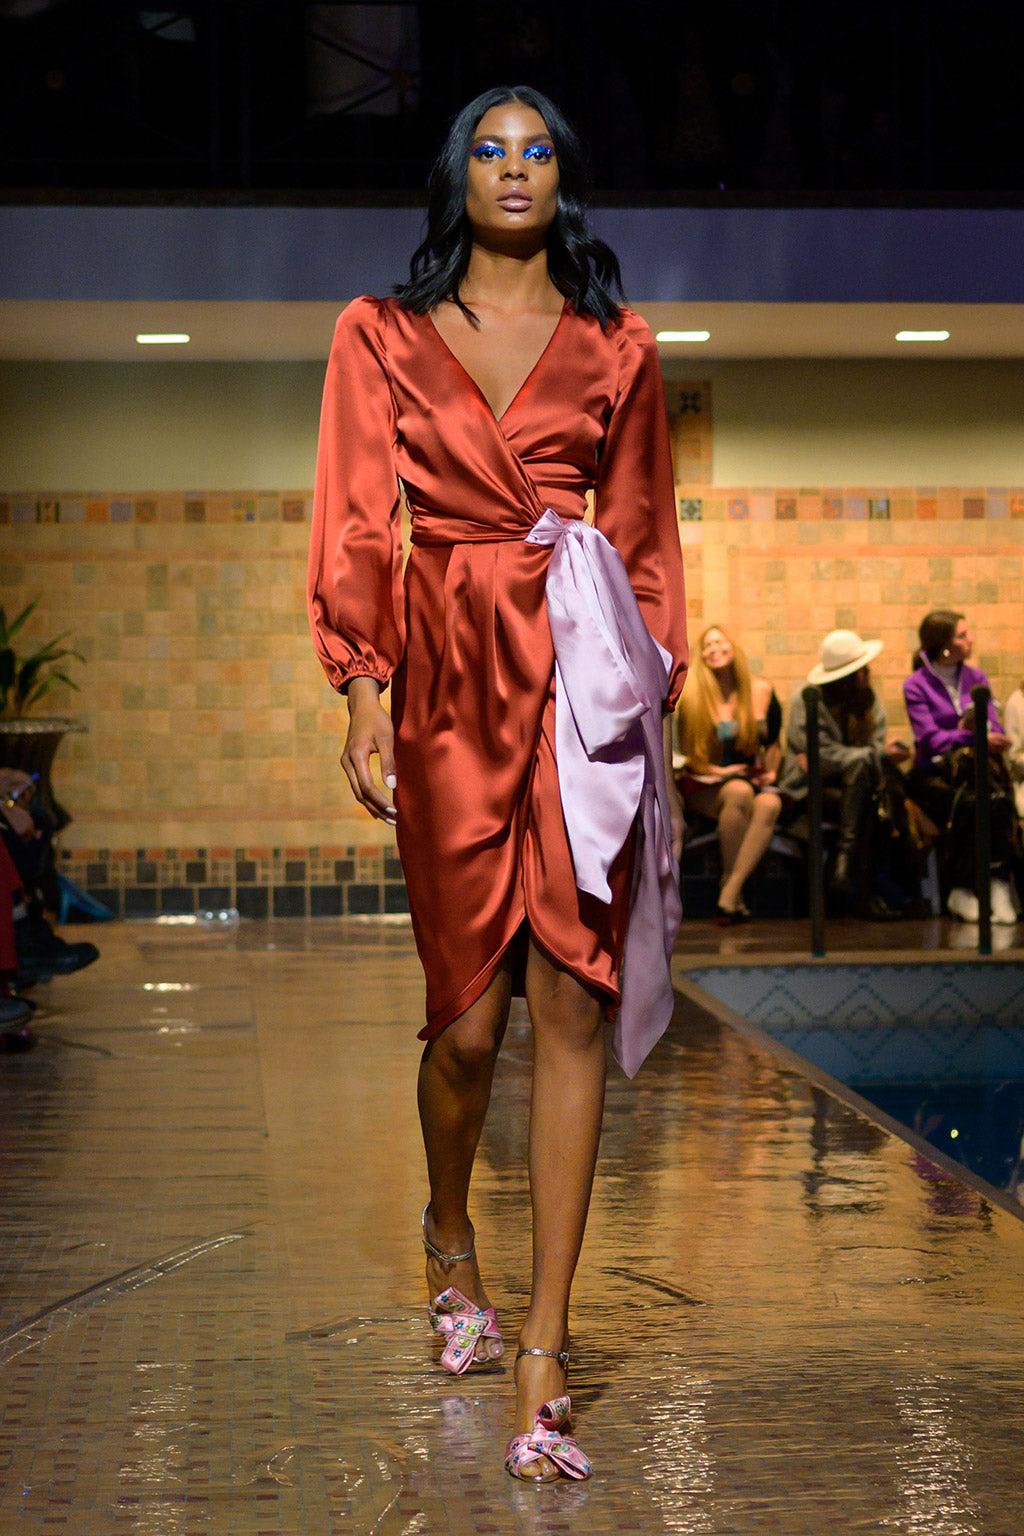 Cynthia Rowley Fall 2019 look 12 featuring an orange silk wrap dress with long sleeves and a large blush bow